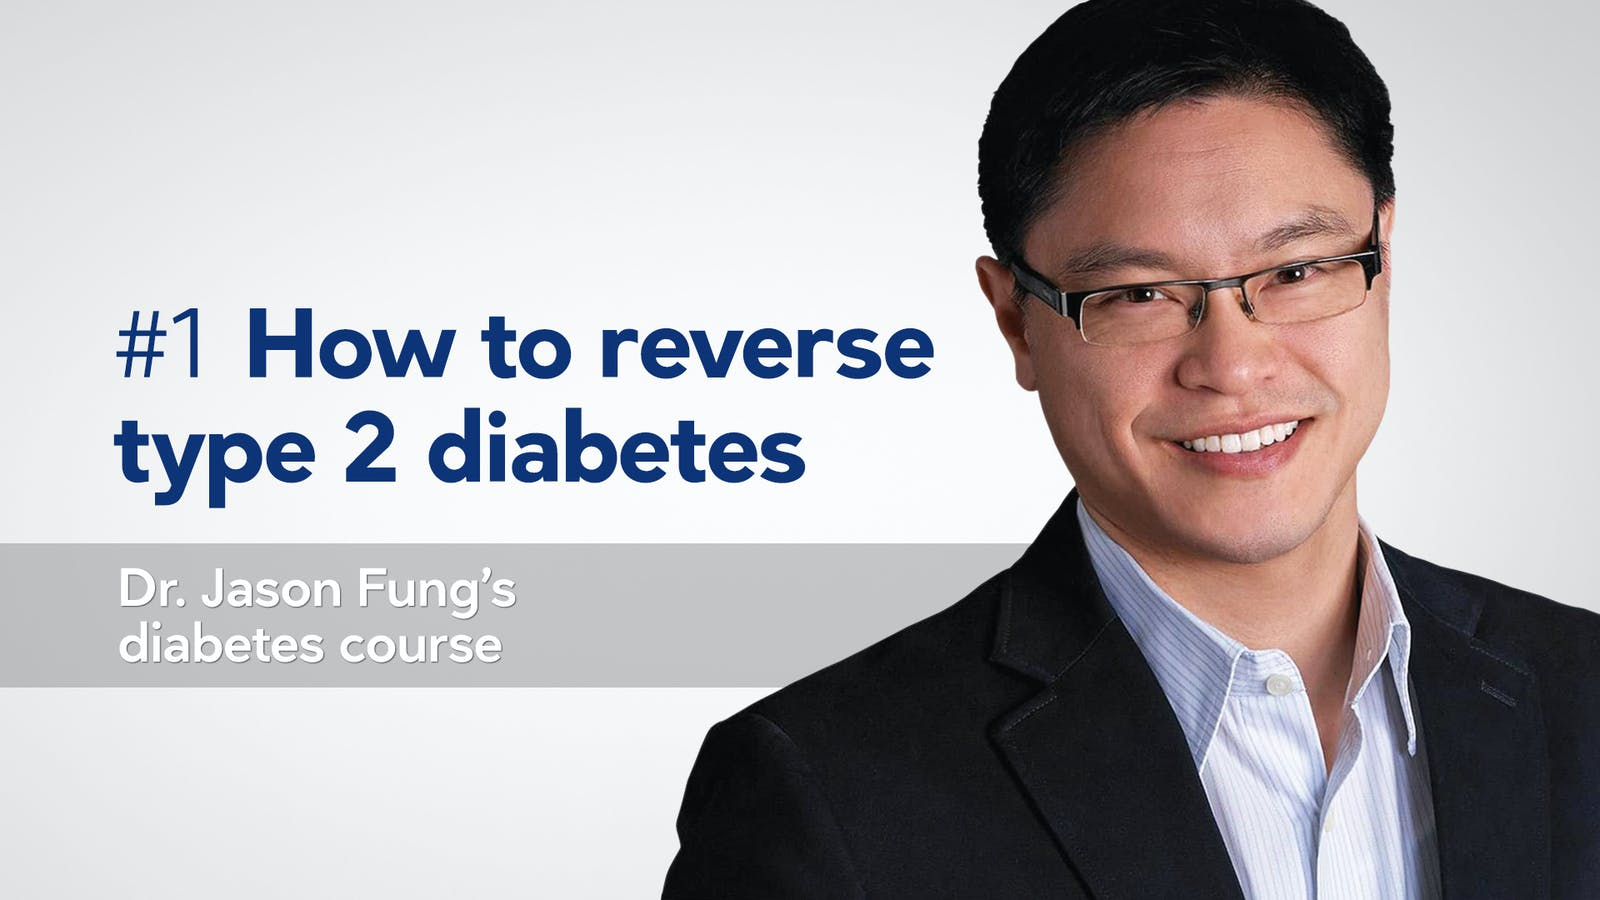 Dr Jason Fung Diabetes Clinic - DiabetesWalls